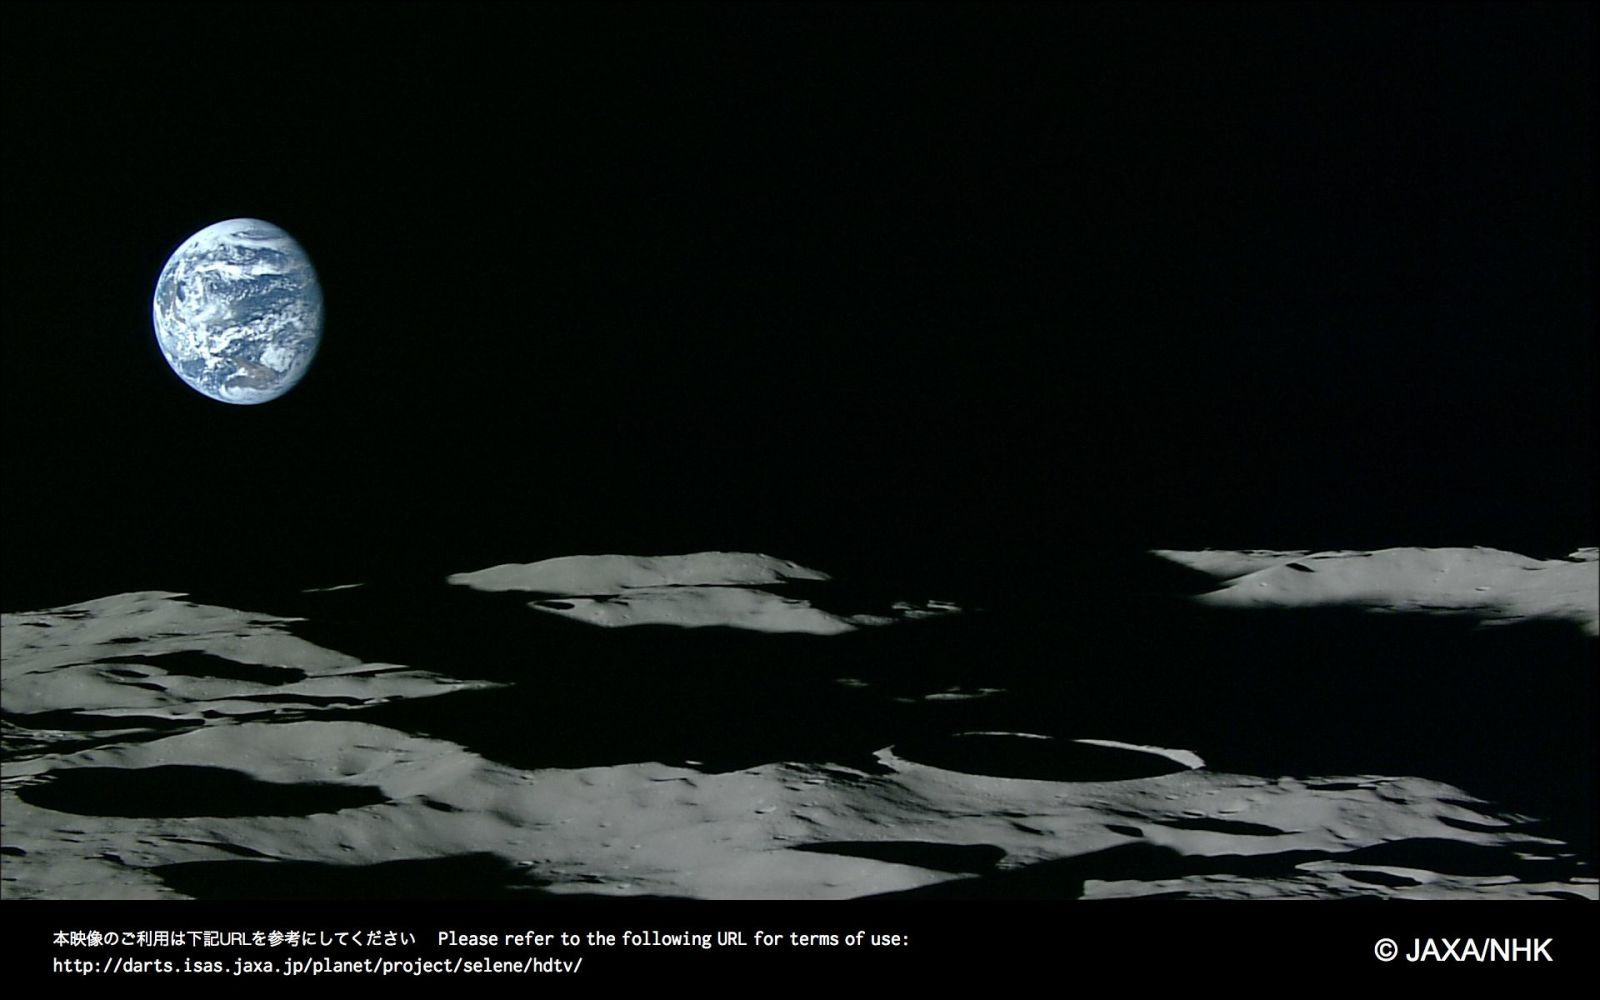 Japan Releases Amazing HD Photos of the Moon, and the Earth Beyond